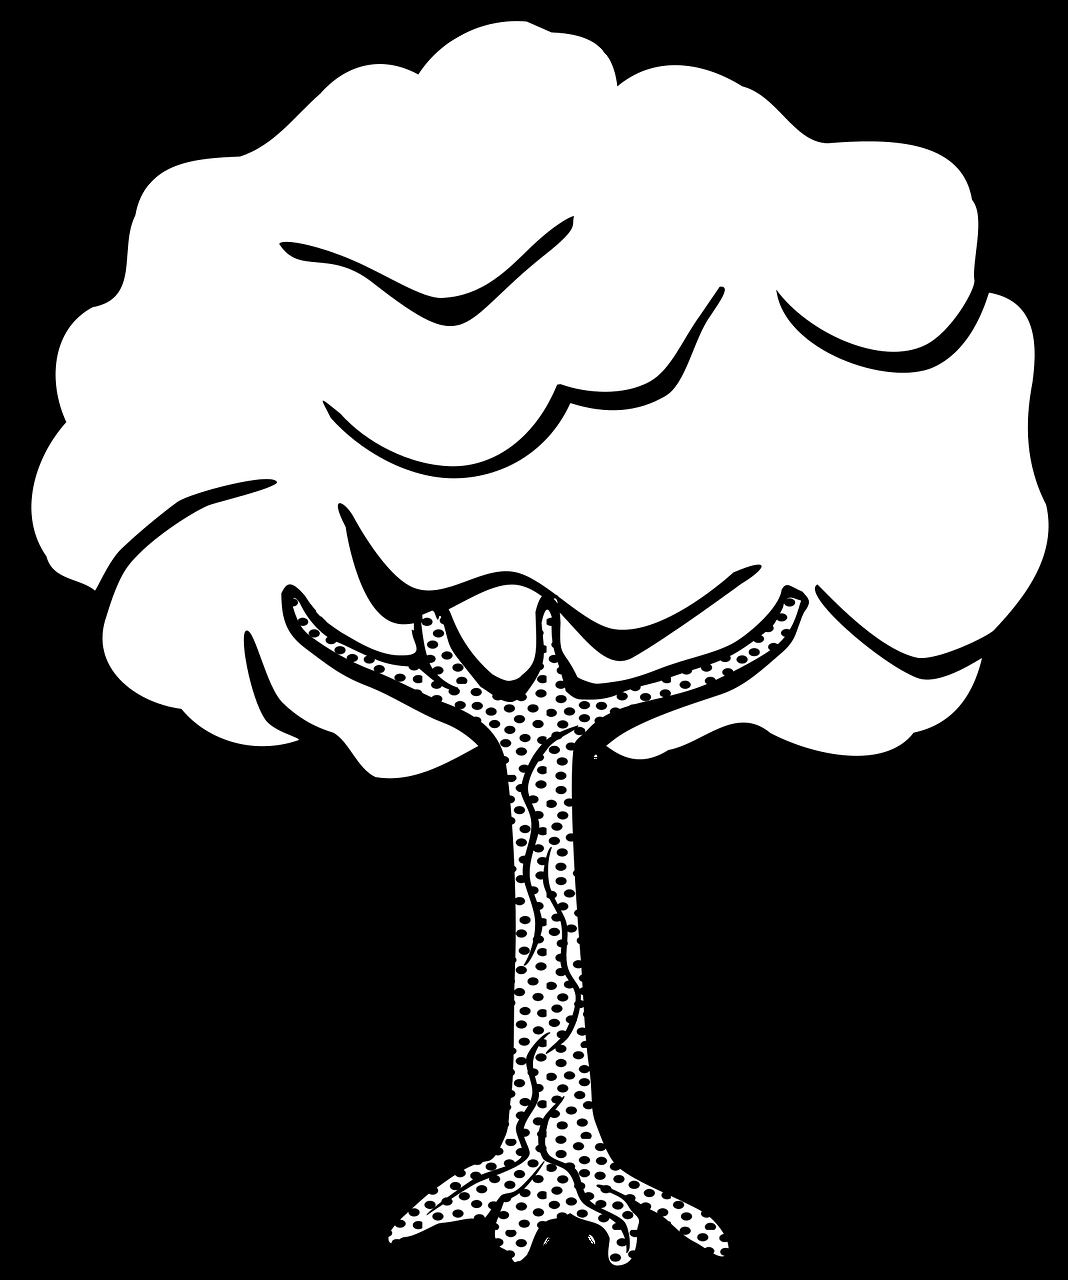 Free Printable Tree Coloring Pages for Kids 14 Pics How to Draw to Print Of Apple Tree Coloring Page with Coloring Pages Apple orchard Download Download